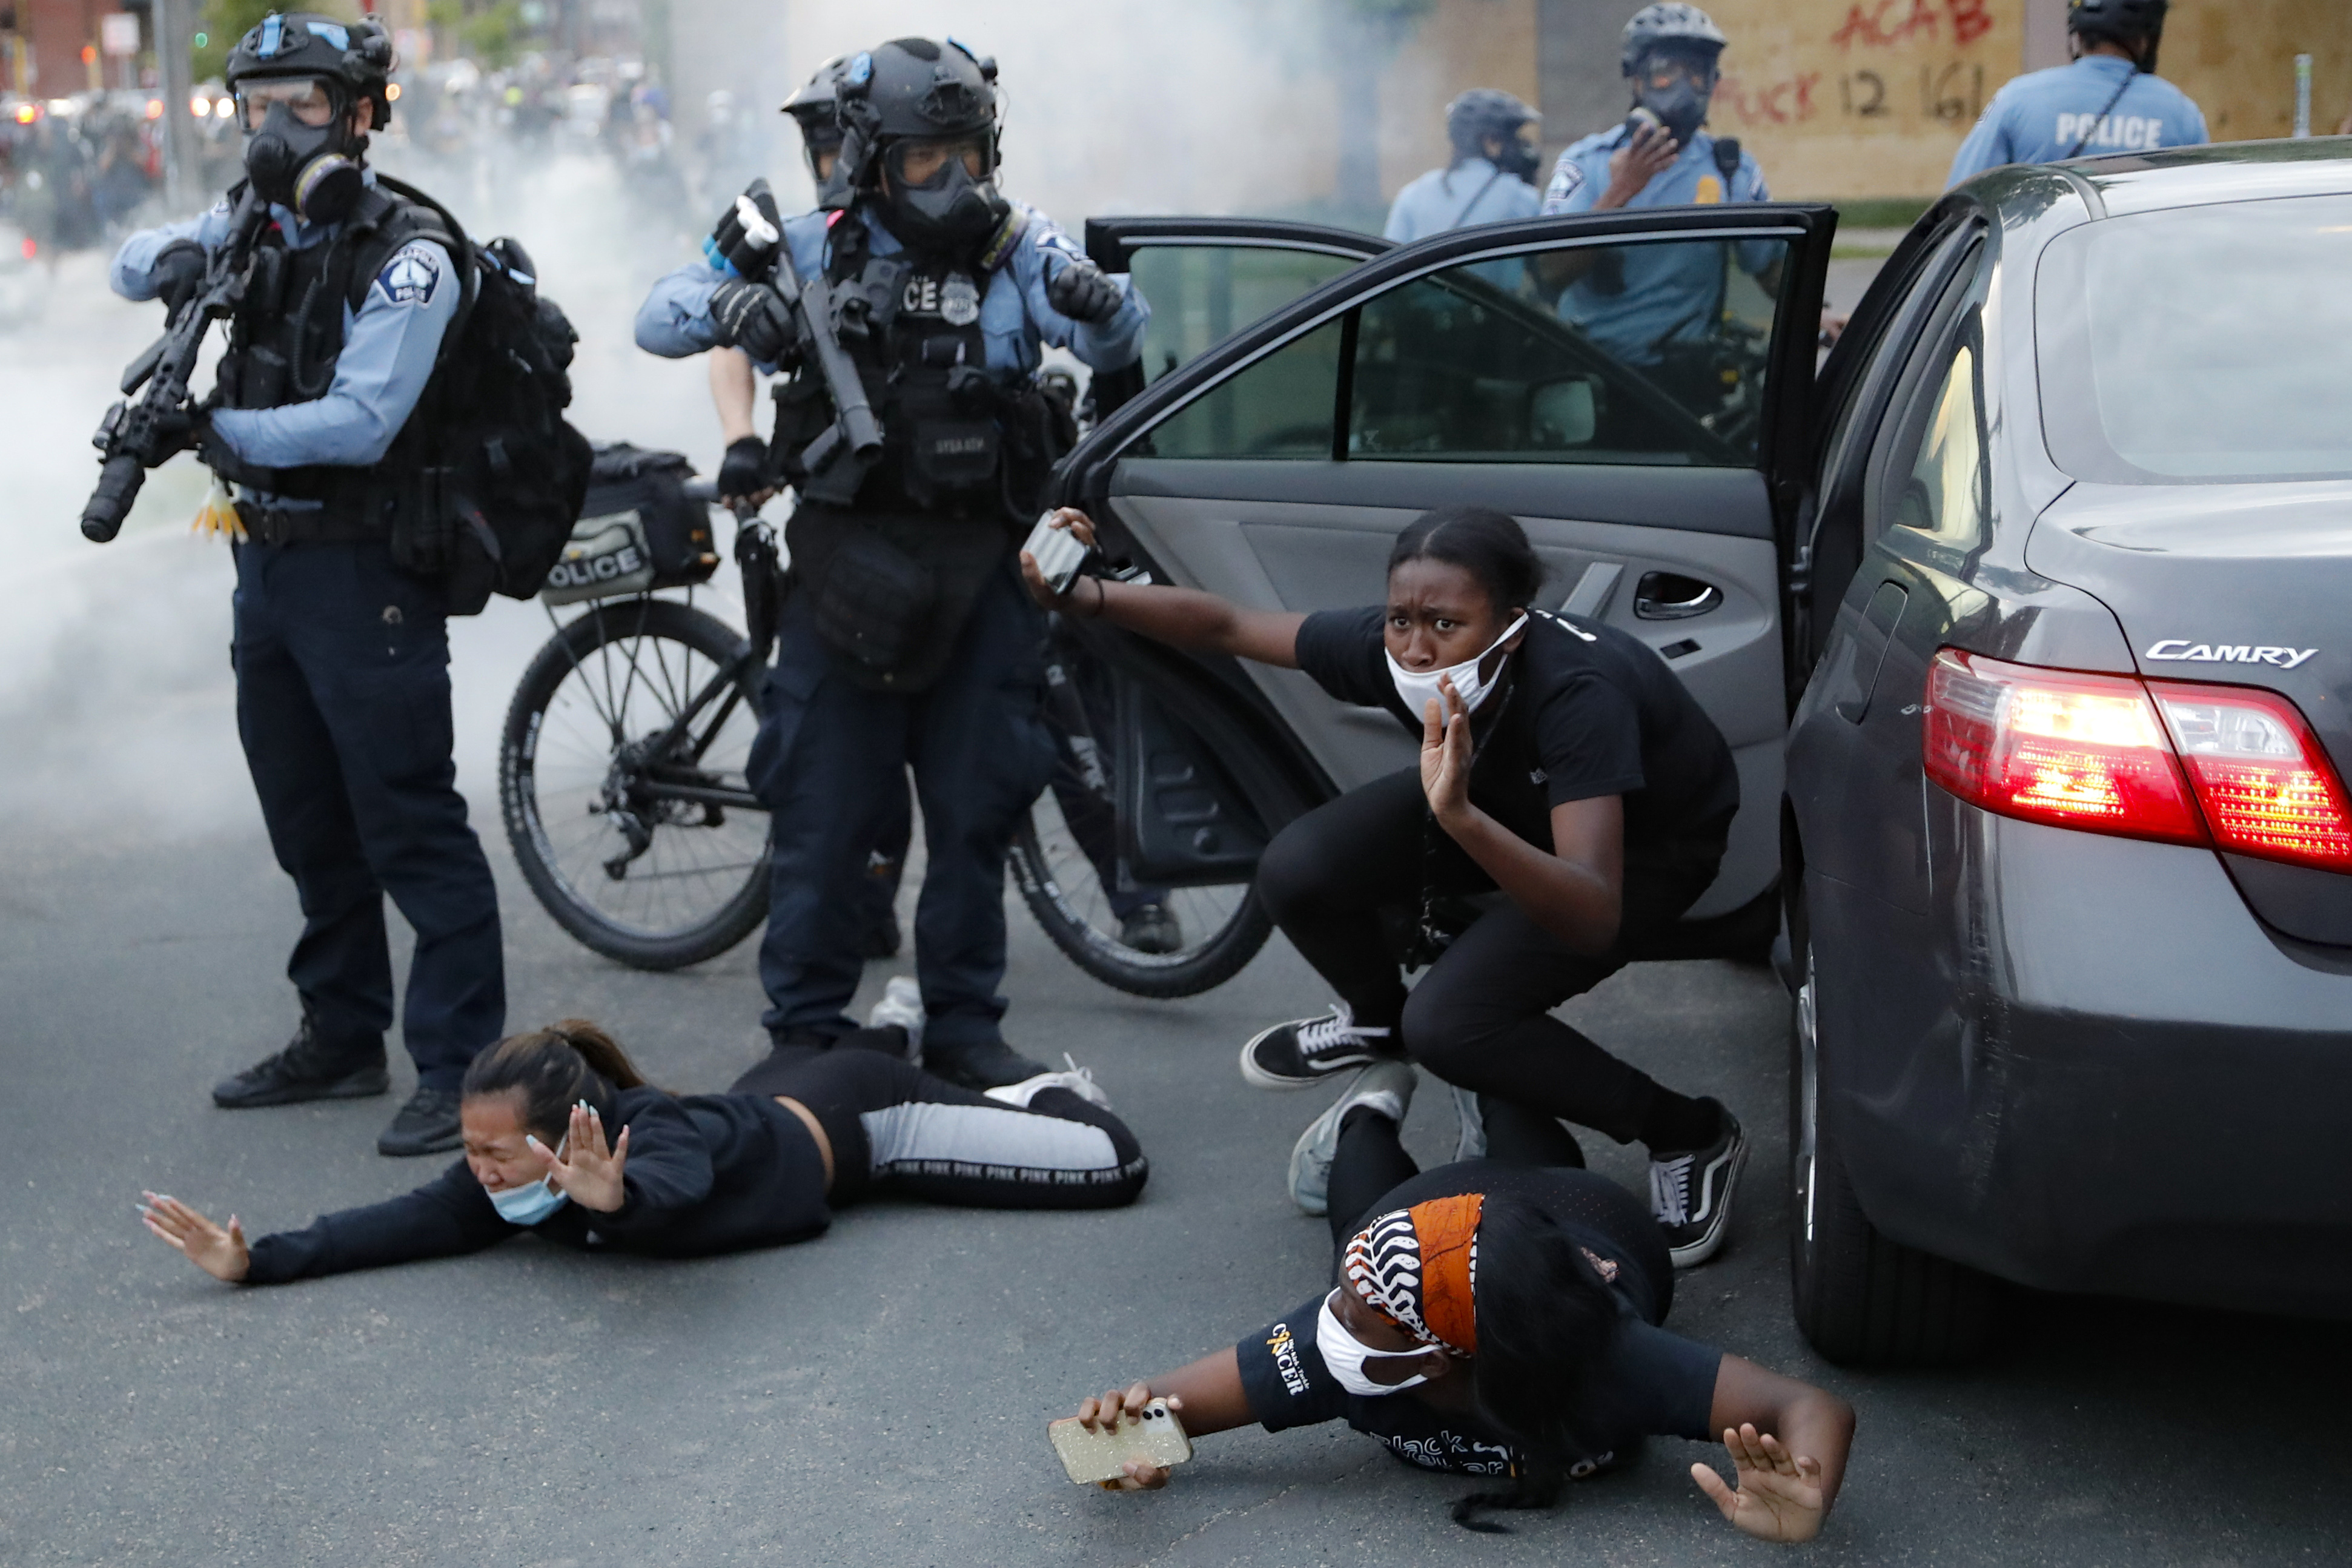 Motorists are ordered to the ground from their vehicle by police during a protest on South Washington Street, Sunday, May 31, 2020, in Minneapolis. Protests continued following the death of George Floyd, who died after being restrained by Minneapolis police officers on Memorial Day. (AP Photo/John Minchillo)